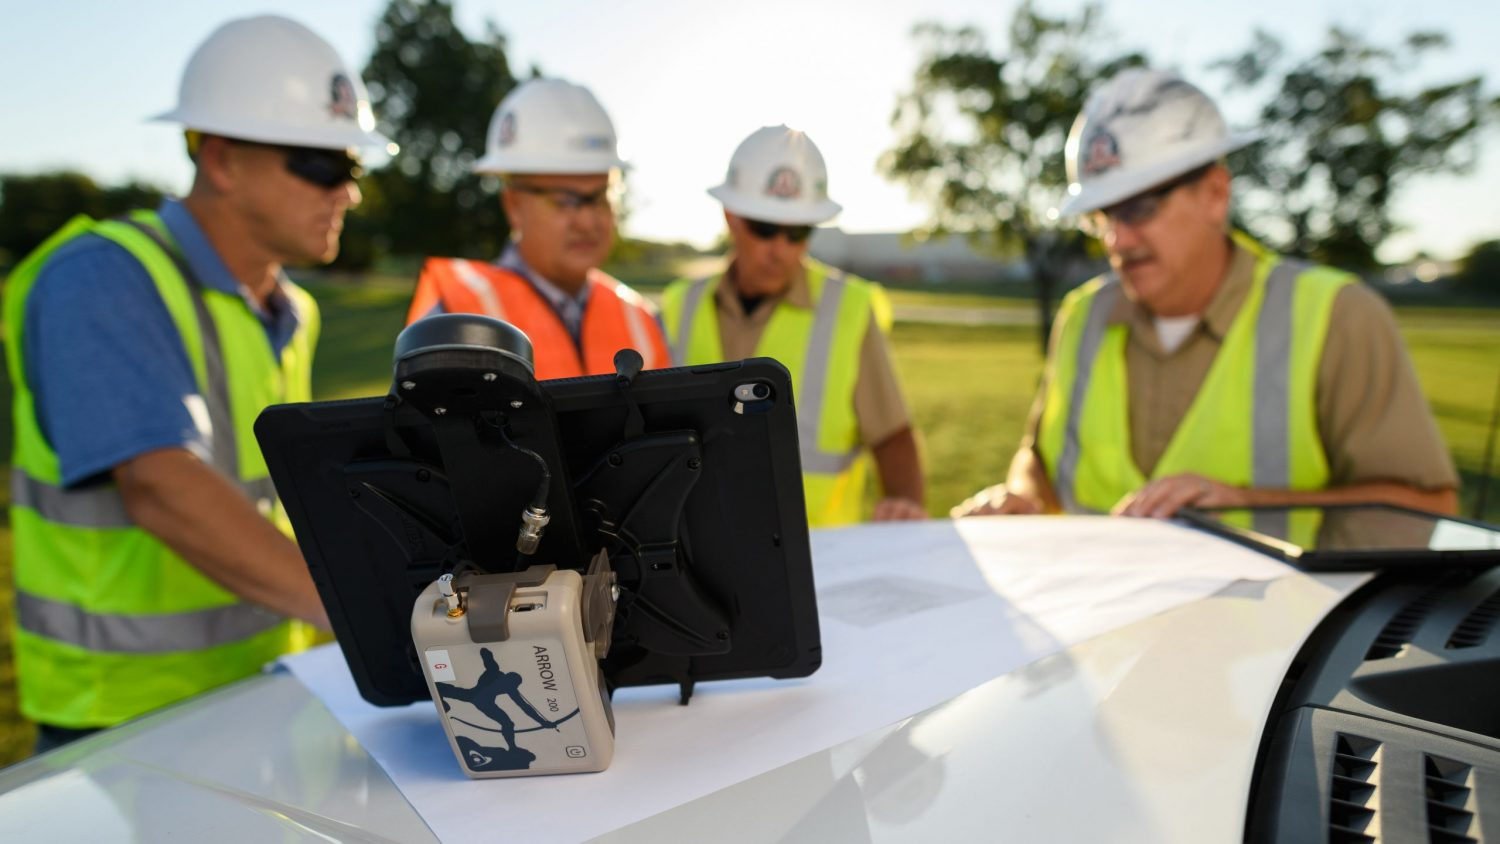 A Tri-County Electric Cooperative crew checks their data in the field, photo courtesy of Kevin Brown